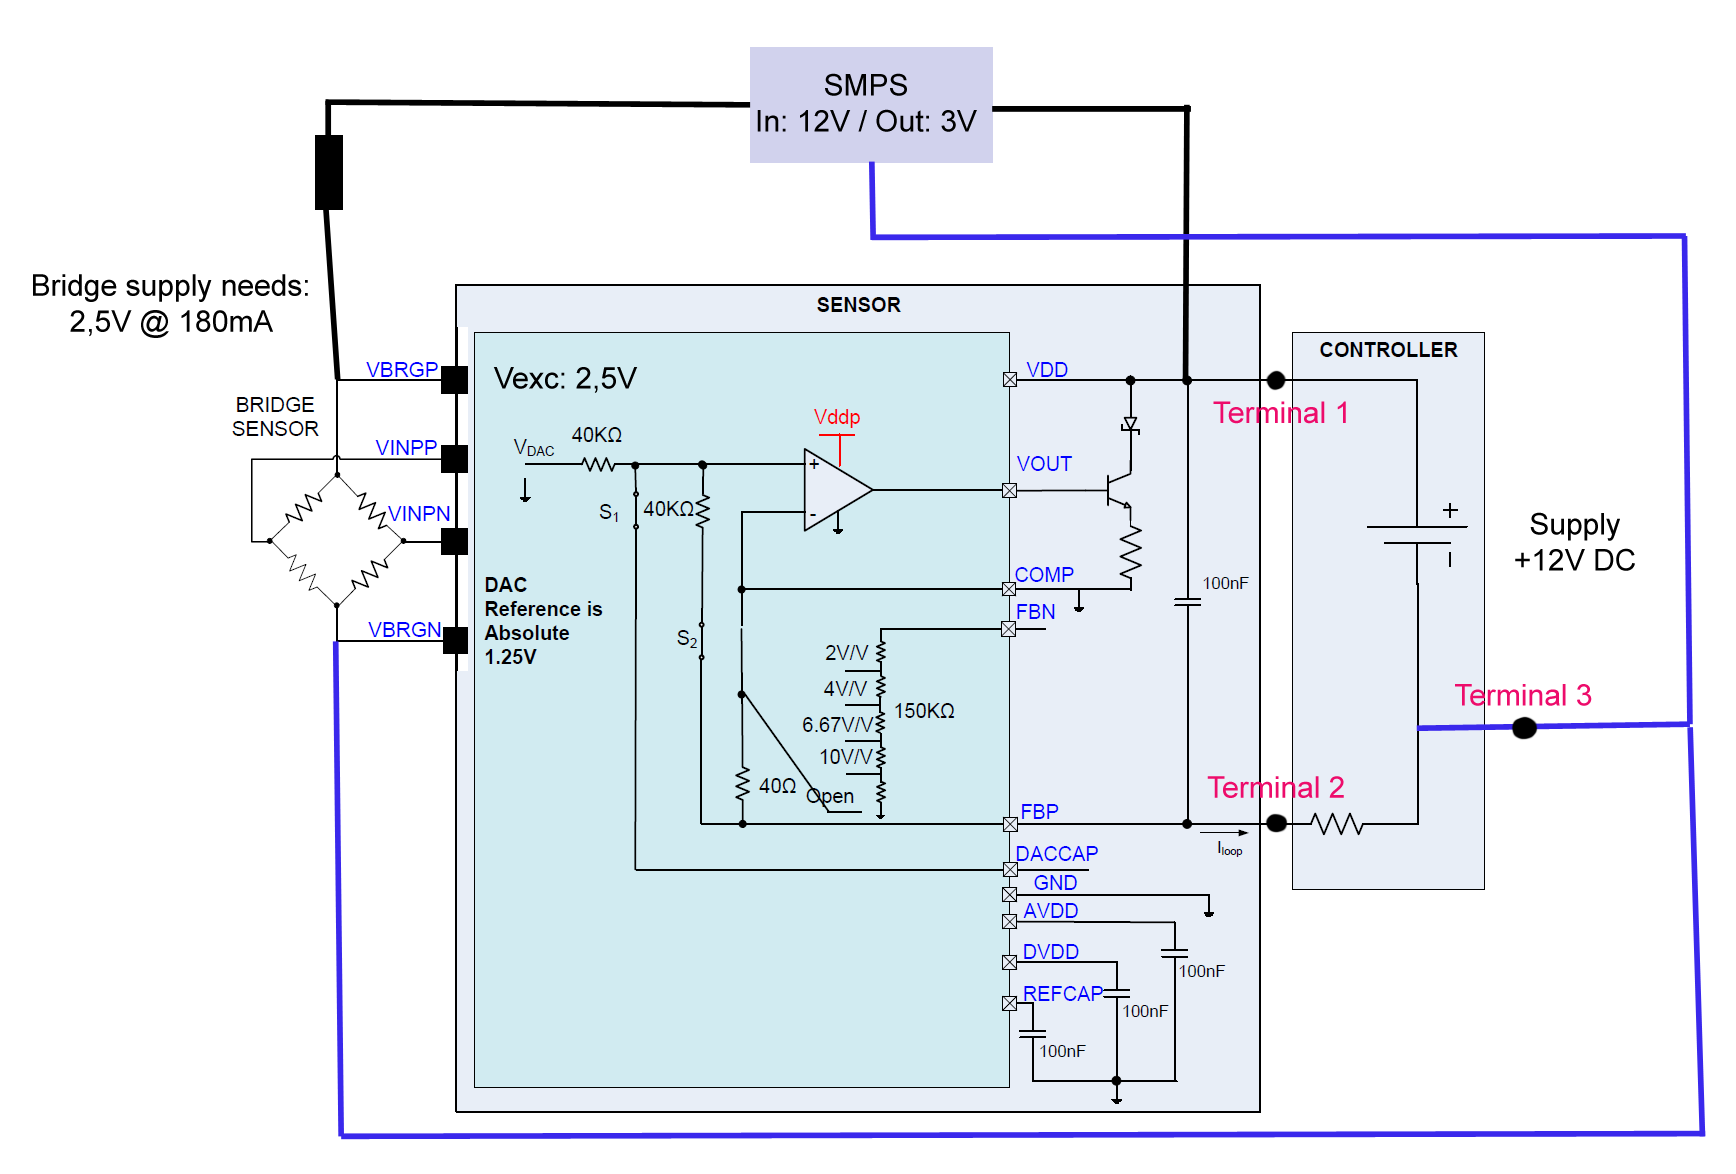 4 Wire Transmitter Wiring Diagram Electronicswiring 1995 Land Rover Defender Fuse Box Location We Will Appreciate Any Help You Can Give Us Thank Very Much